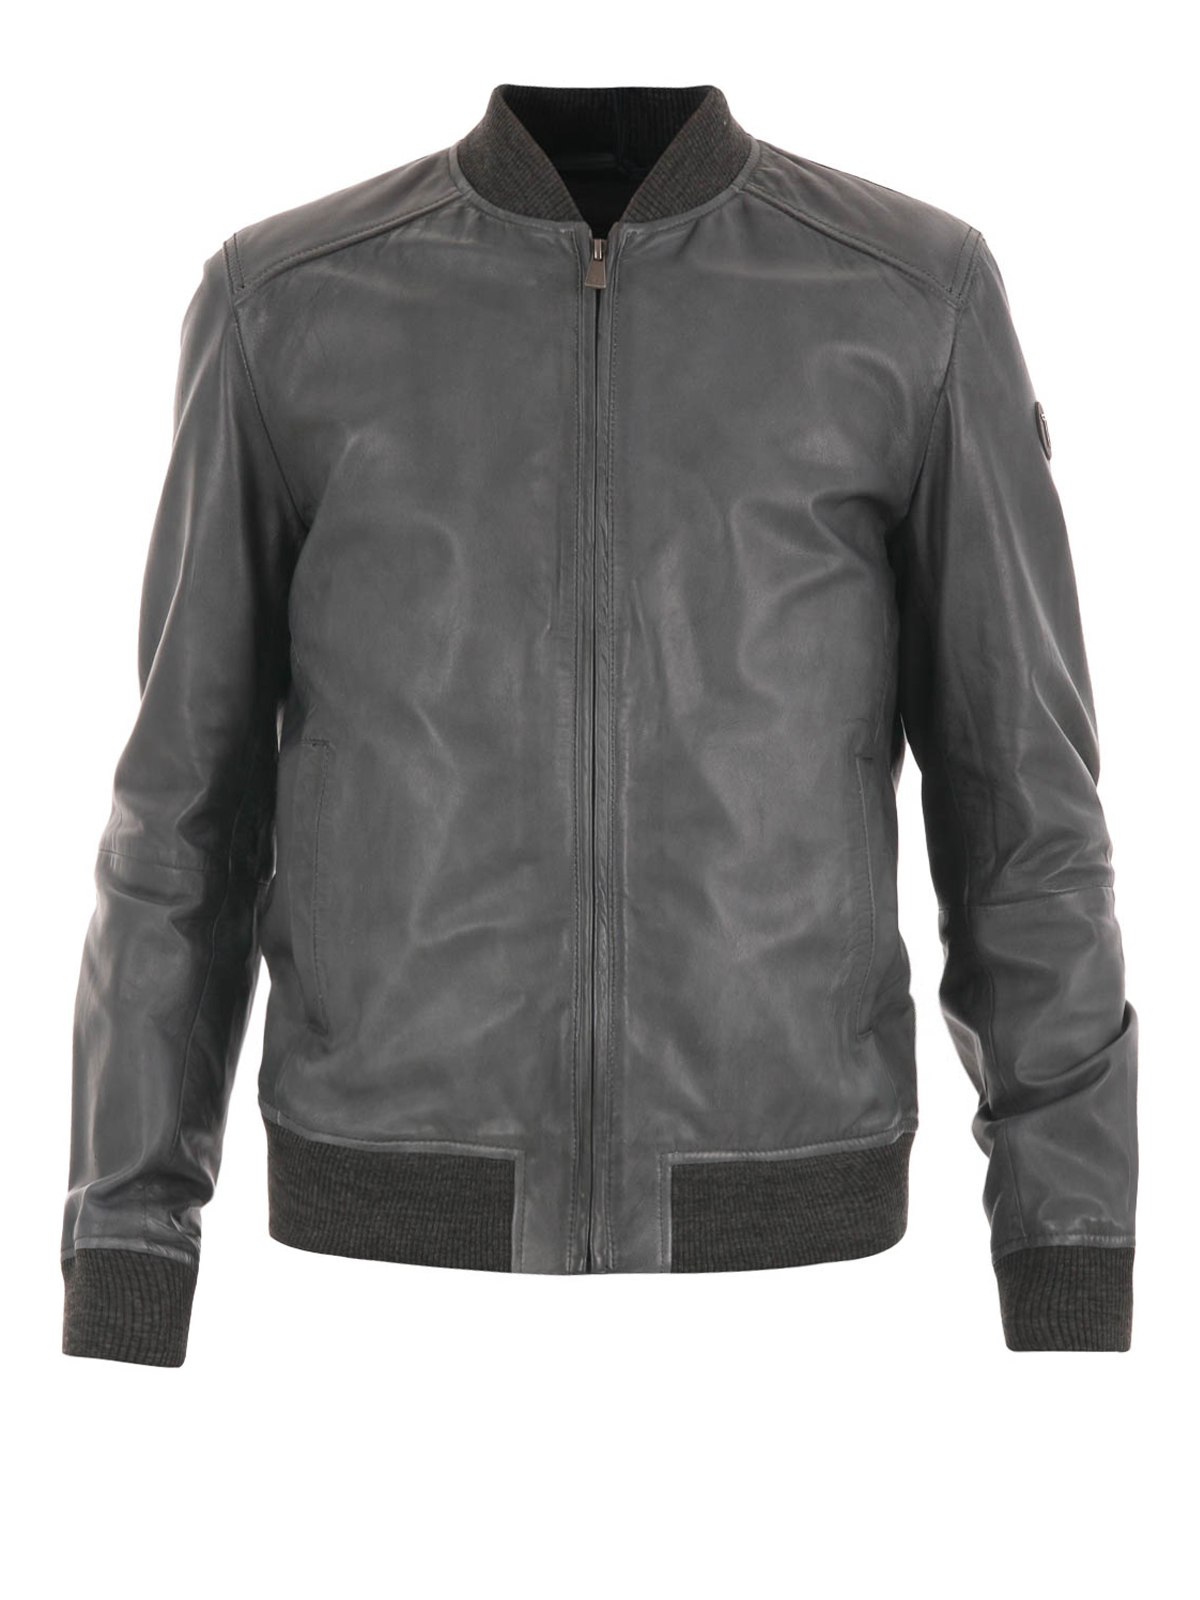 Lamb leather jackets